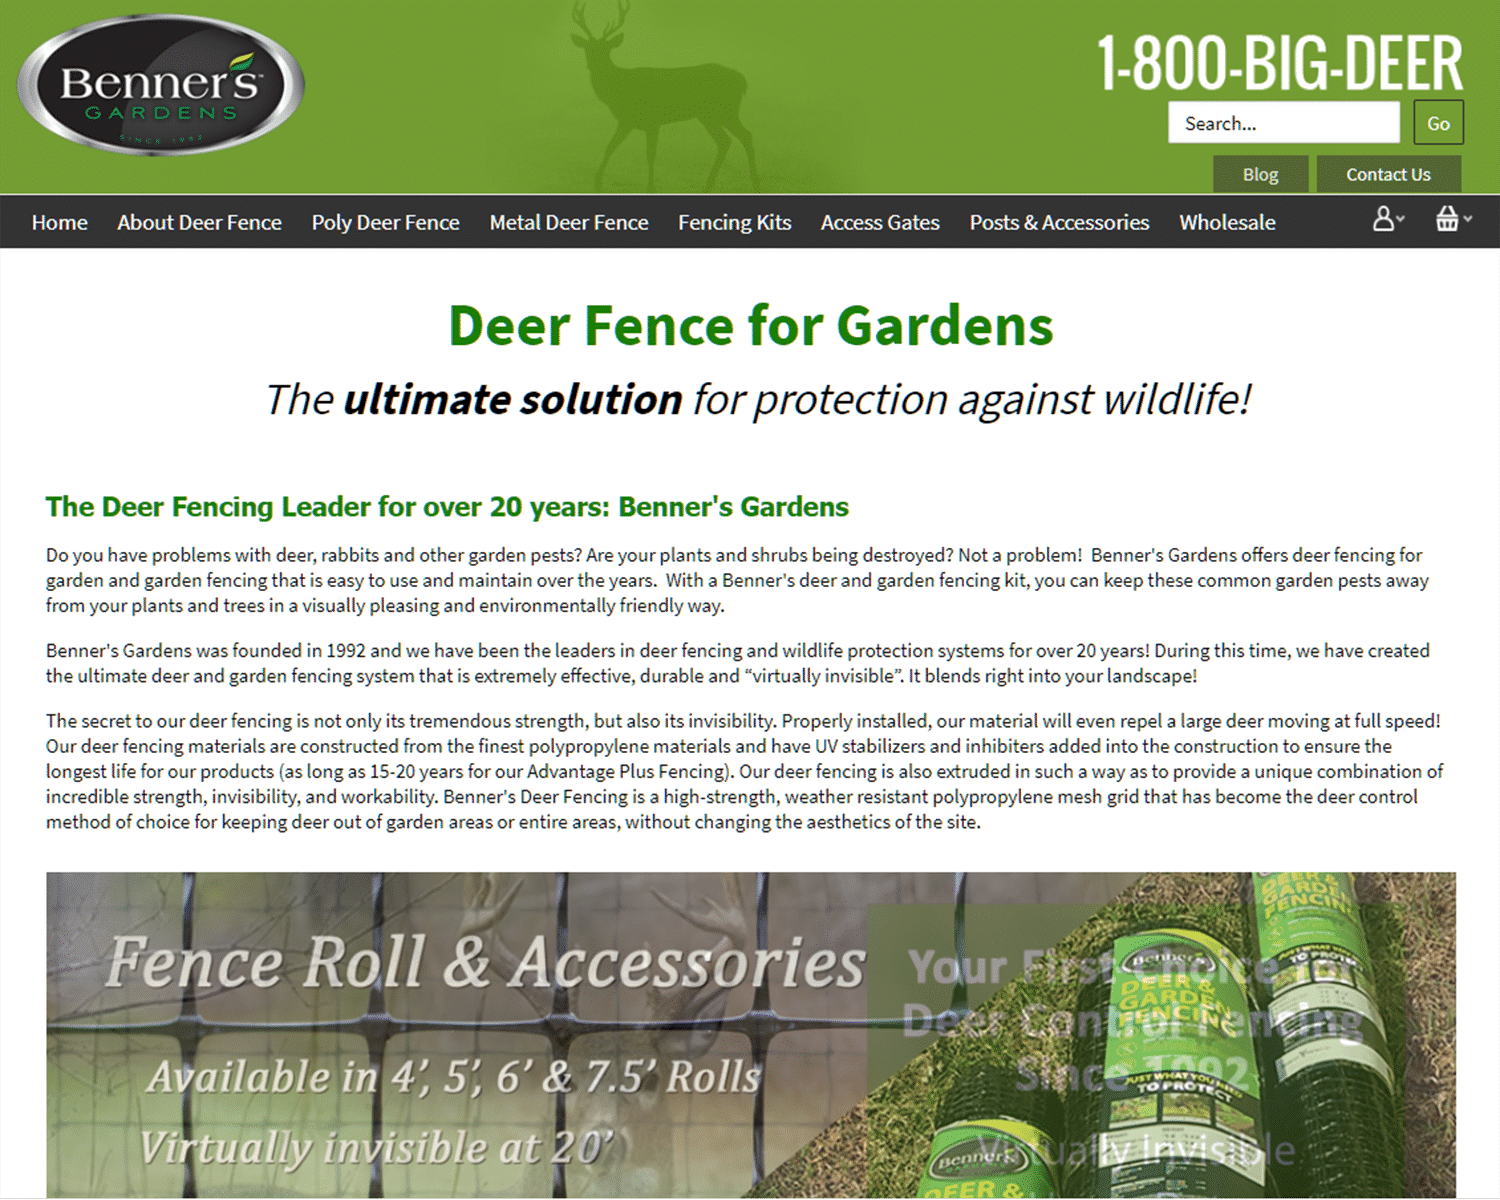 SEO Case Study for Benners Garden